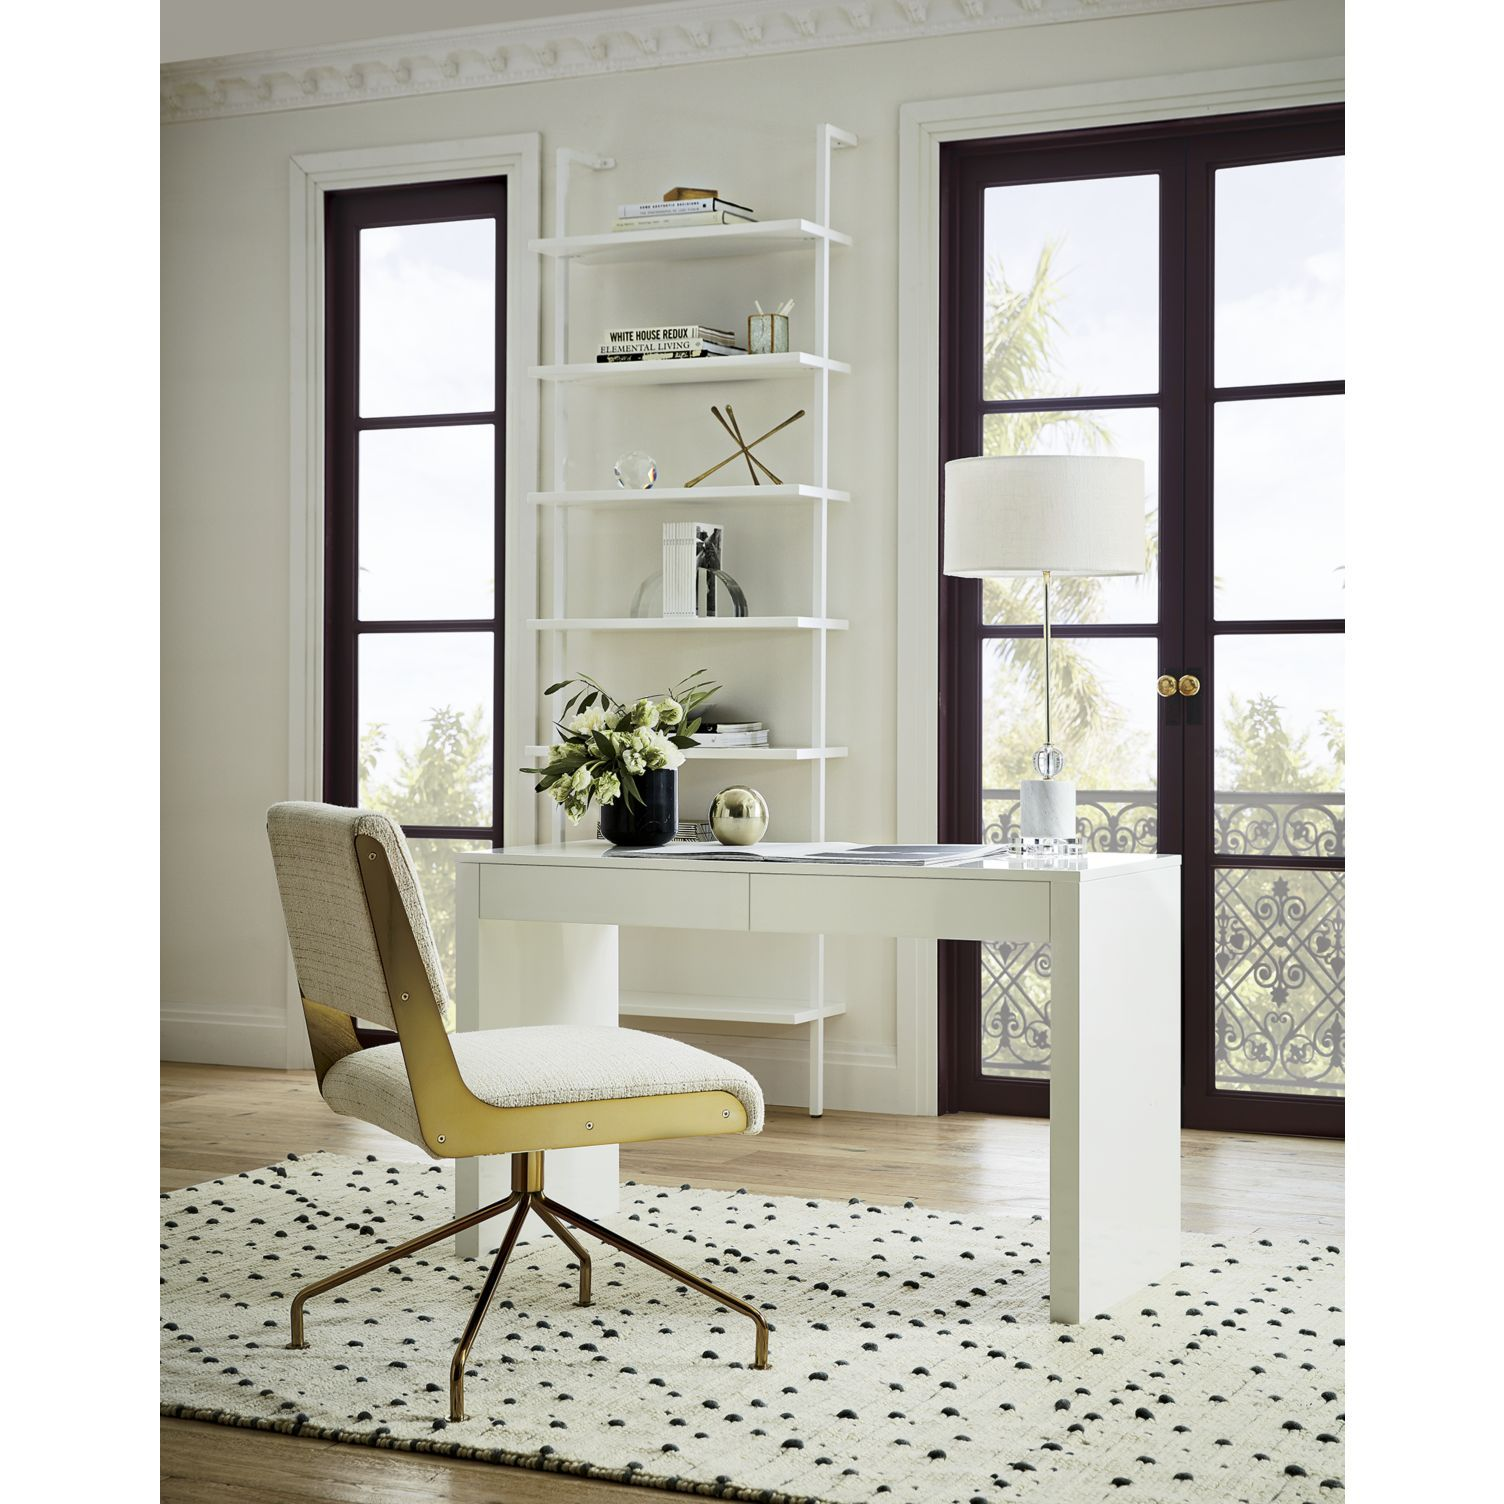 Runway White Lacquer Desk Reviews Cb2 White Lacquer Desk Modern Home Office Furniture Cheap Office Furniture